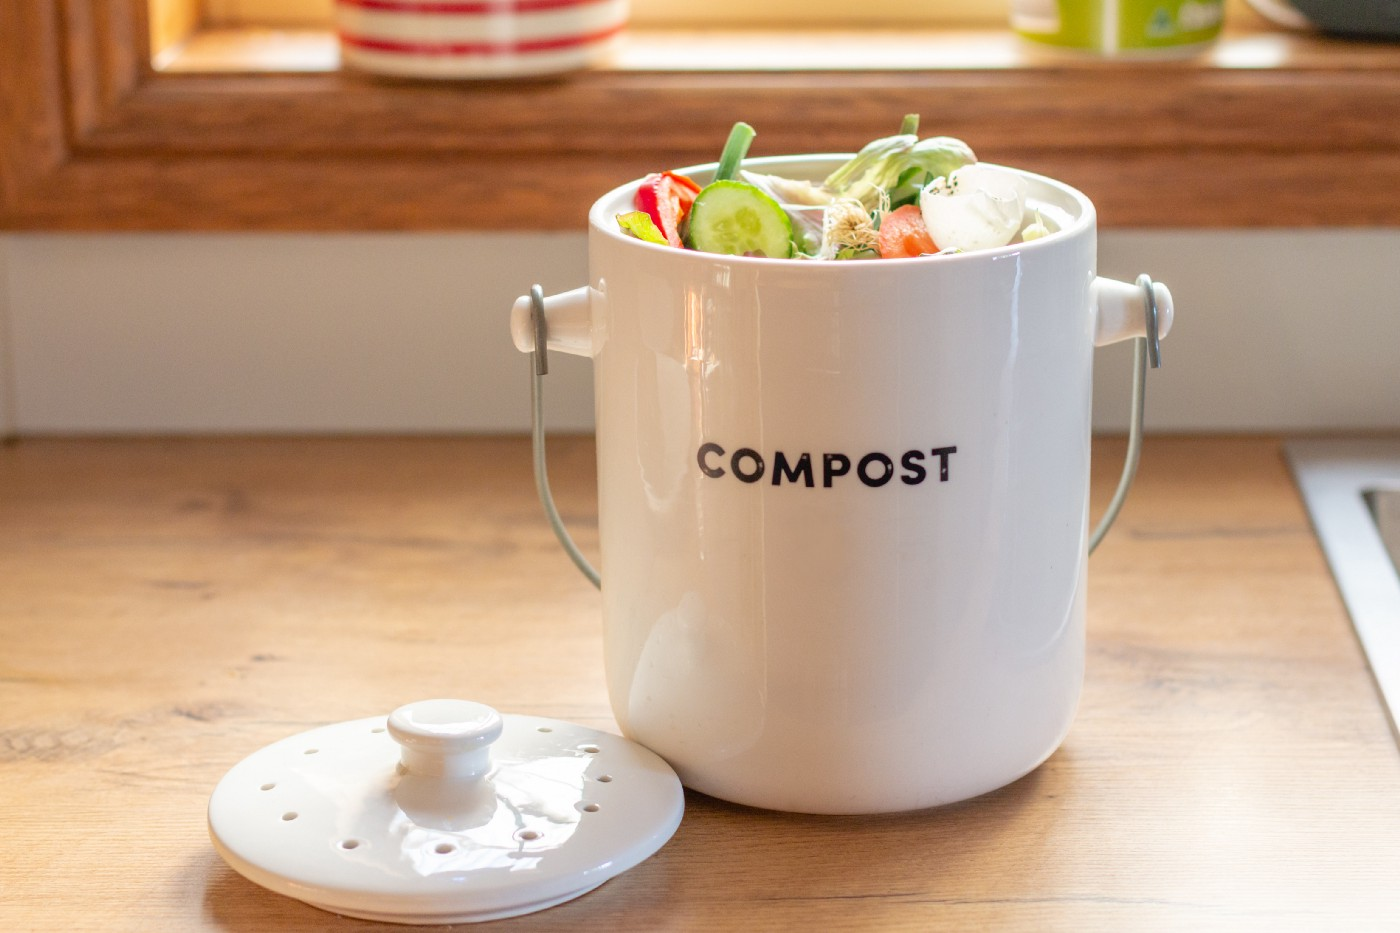 A cleanly-designed ceramic compost bin sitting on a kitchen counter